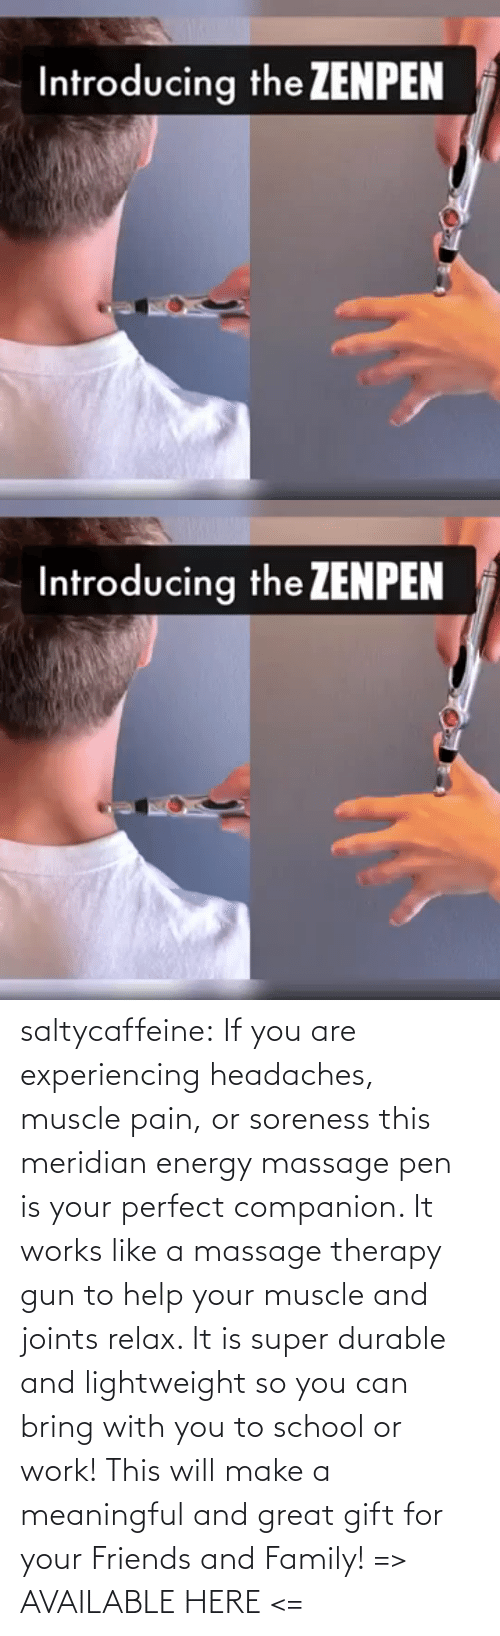 pen: saltycaffeine: If you are experiencing headaches, muscle pain, or soreness this meridian energy massage pen is your perfect companion. It works like a massage therapy gun to help your muscle and joints relax. It is super durable and lightweight so you can bring with you to school or work! This will make a meaningful and great gift for your Friends and Family! => AVAILABLE HERE <=